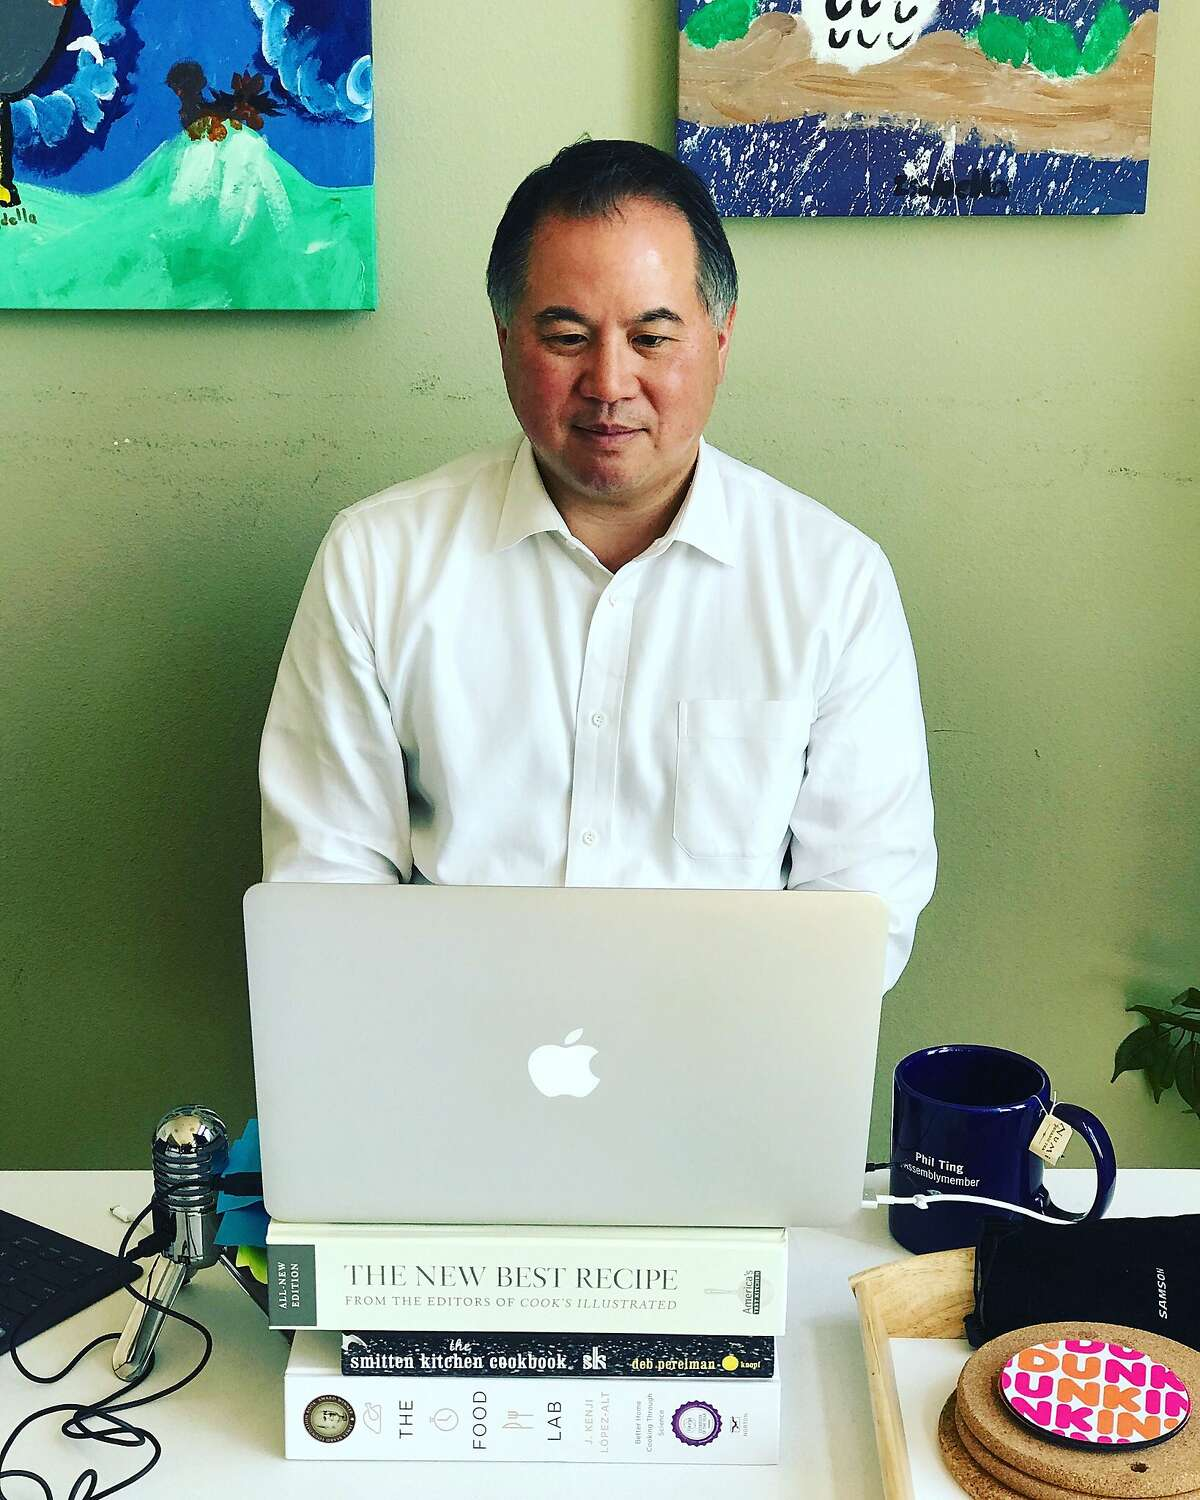 Assemblyman Phil Ting, D-San Francisco, hosts a virtual town hall during the coronavirus pandemic. Ting spoke with constituents April 29 from his home in the Sunset neighborhood.